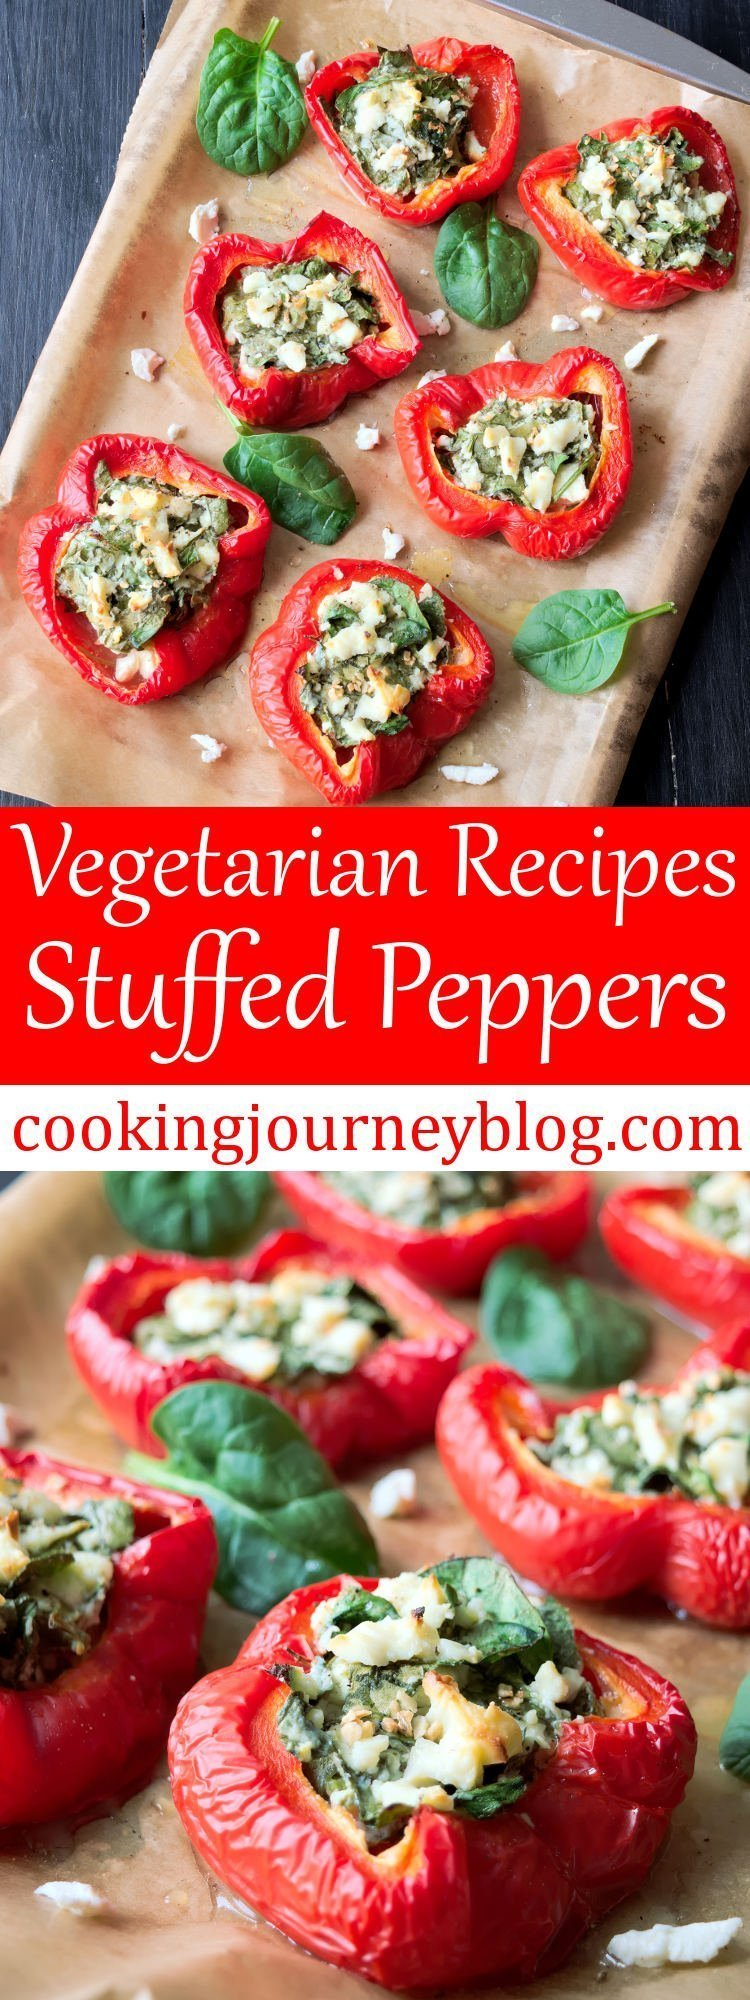 Baked stuffed peppers is one of tasty and healthy vegetarian recipes to prepare straight ahead. If you are searching for easy snacks to make, these stuffed peppers are just perfect! They are juicy, salty and addictive.